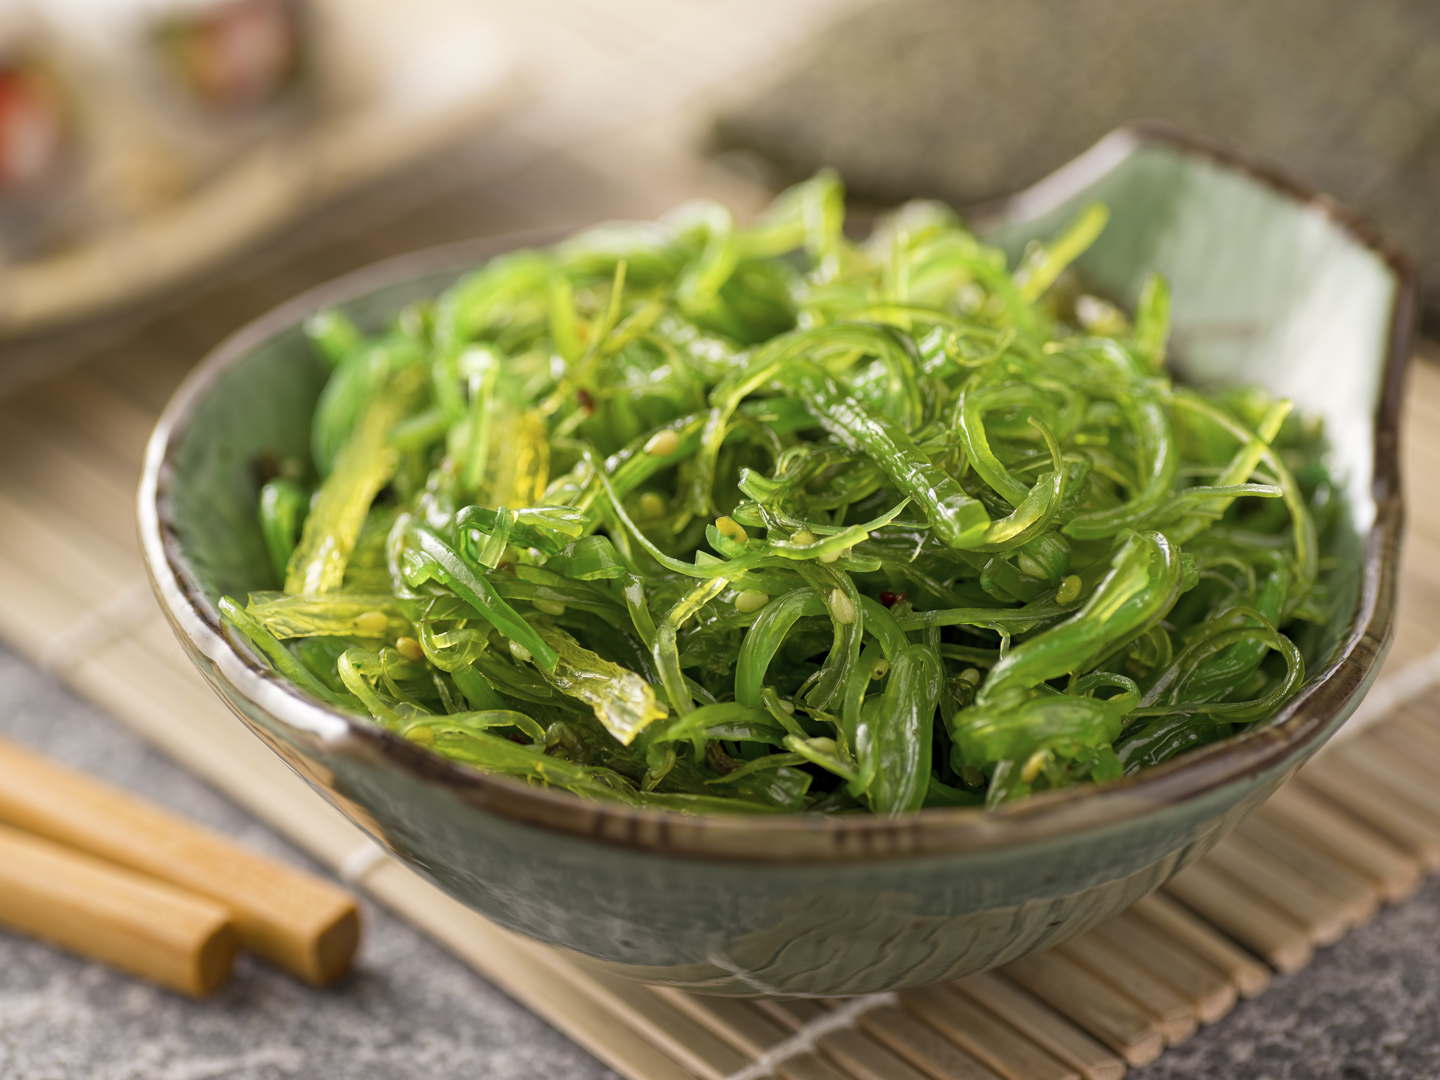 3 Simple Methods for Preserving Food - Seaweed Salad